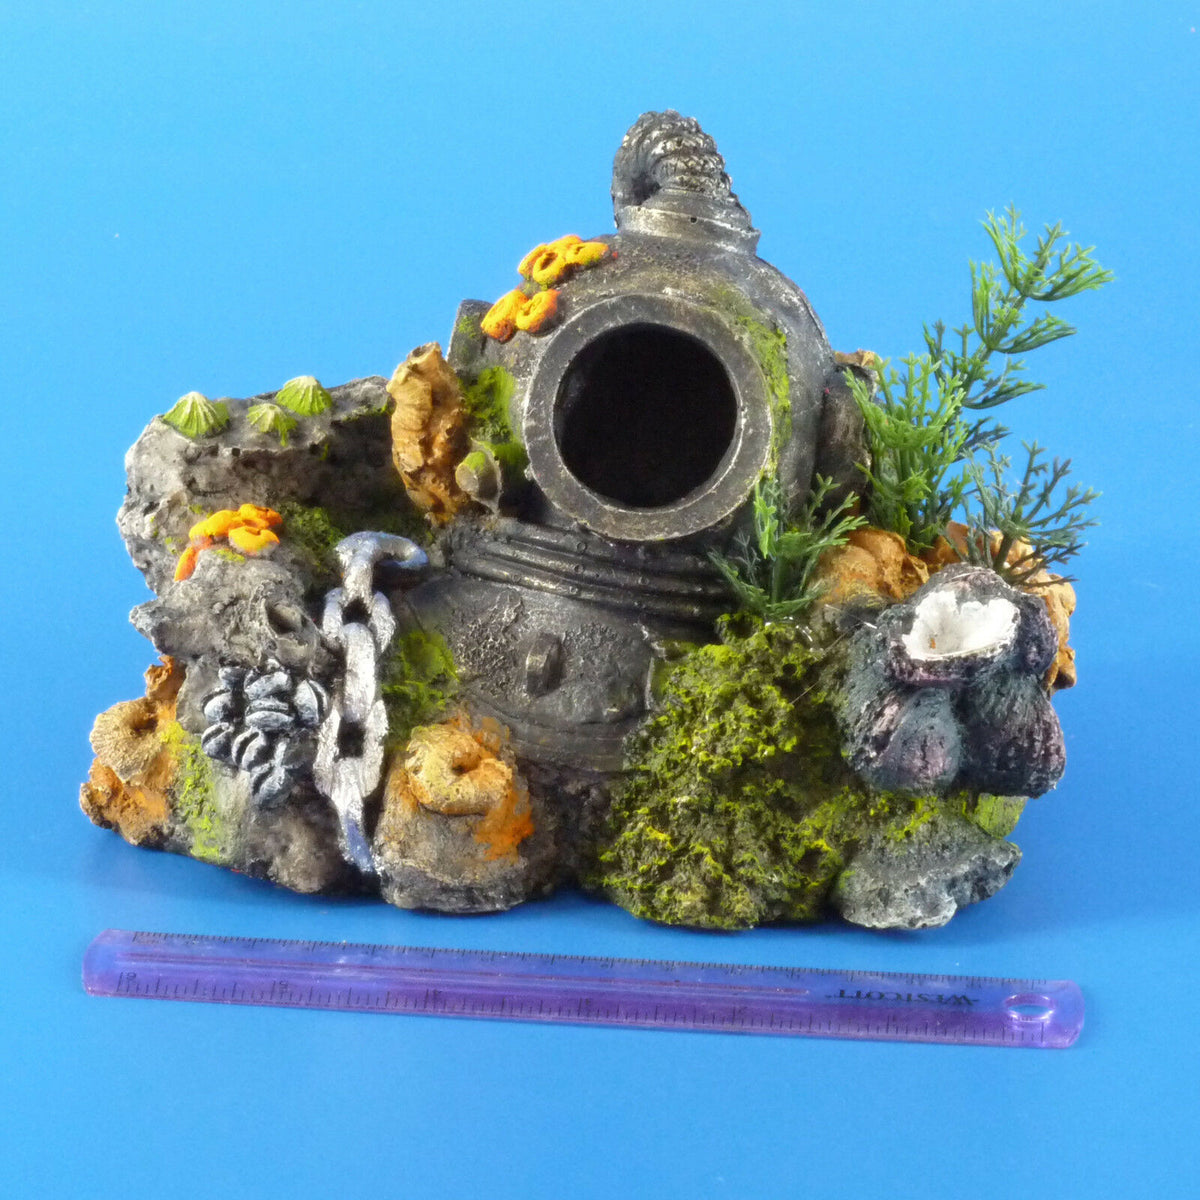 New Kazoo Diver's Helmet with Plants Small Aquarium Ornament